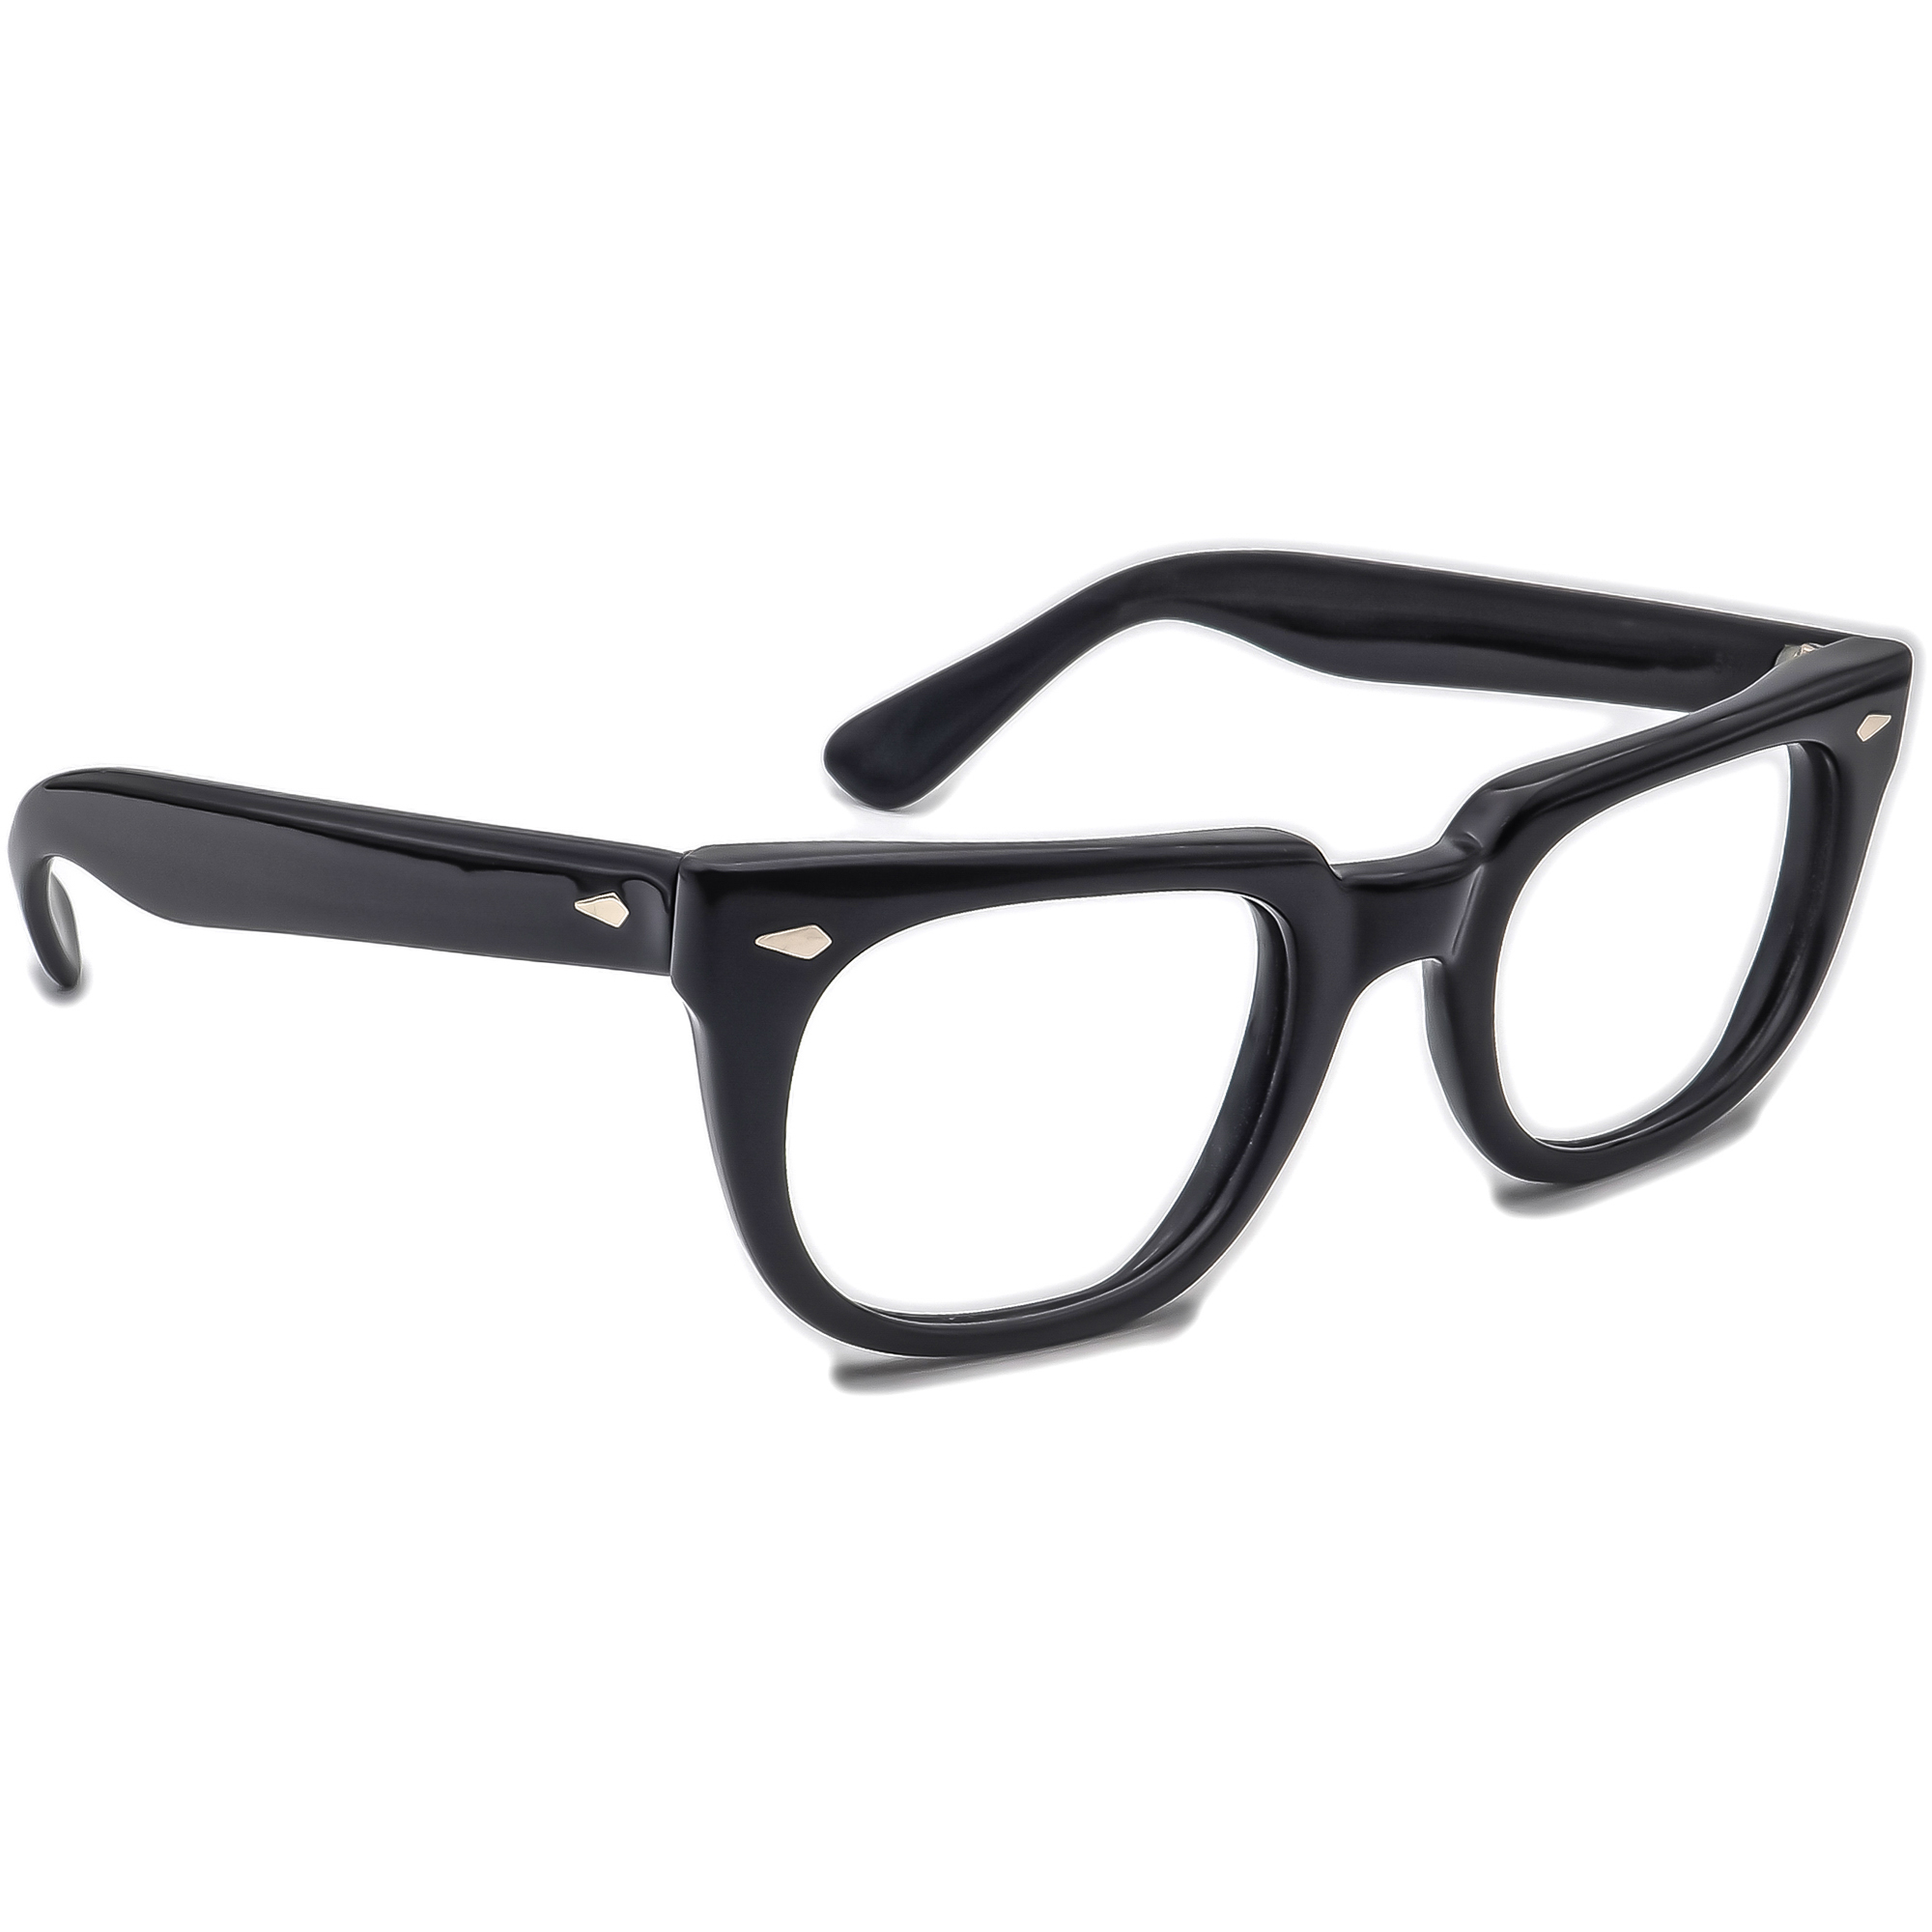 American Optical 5 3/4 Eyeglasses